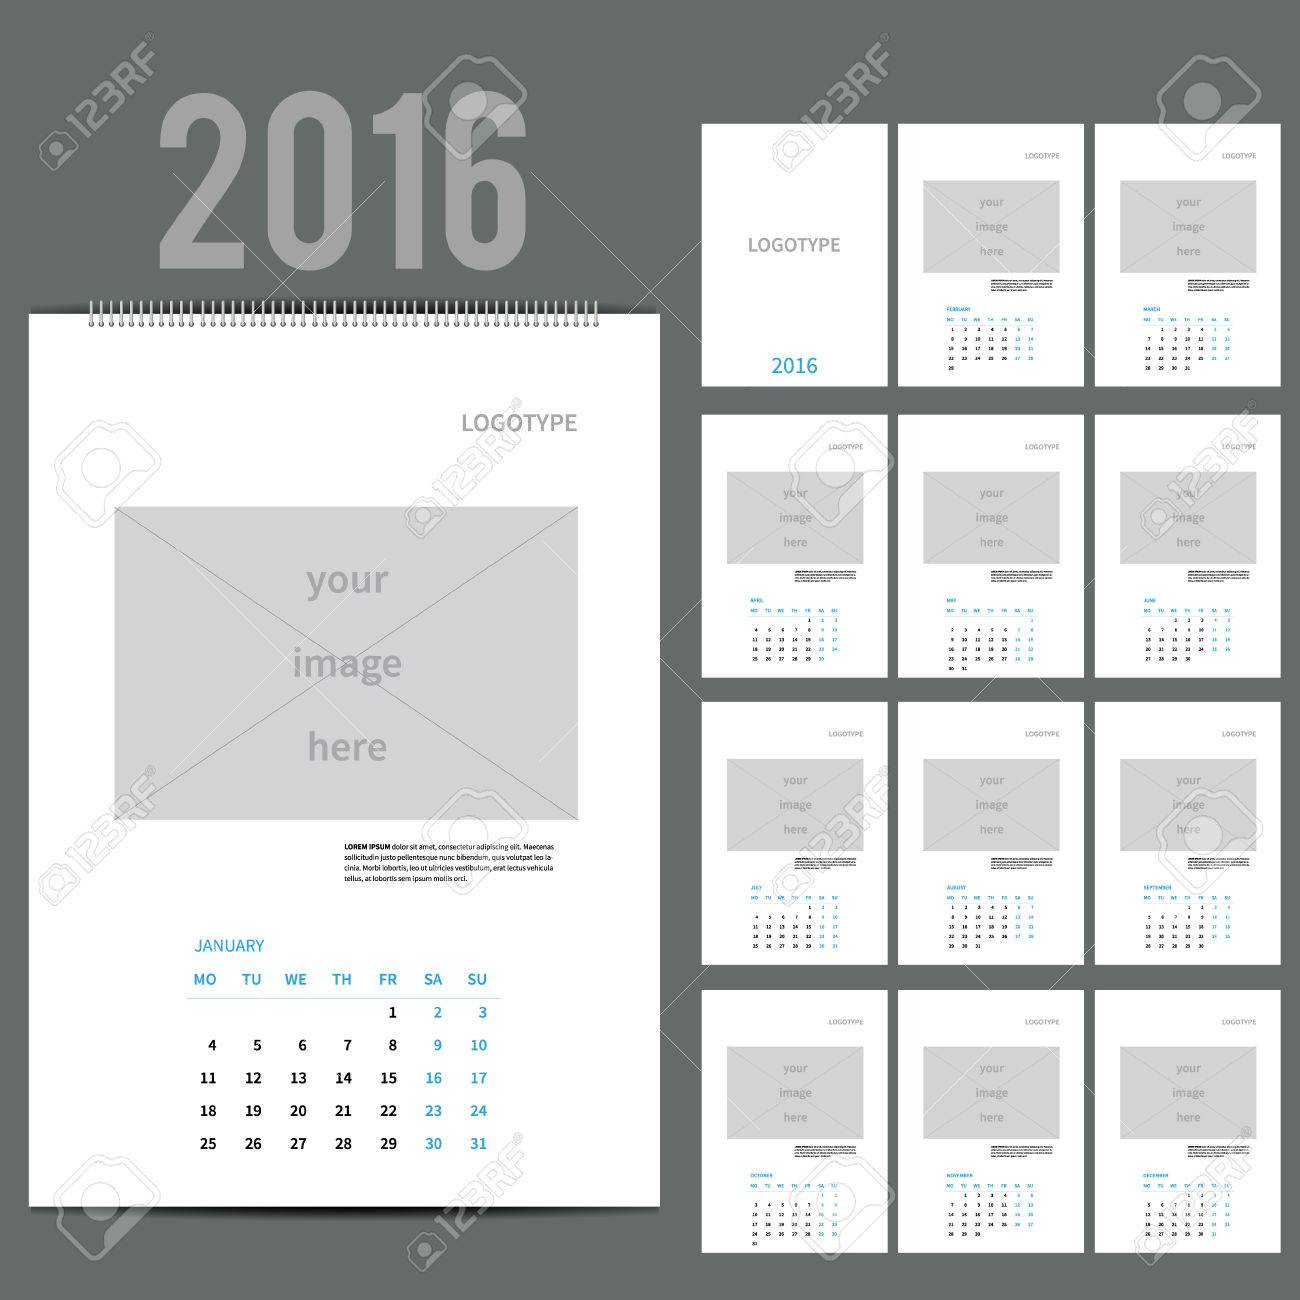 powerpoint a3 template choice image - templates example free download, Powerpoint templates